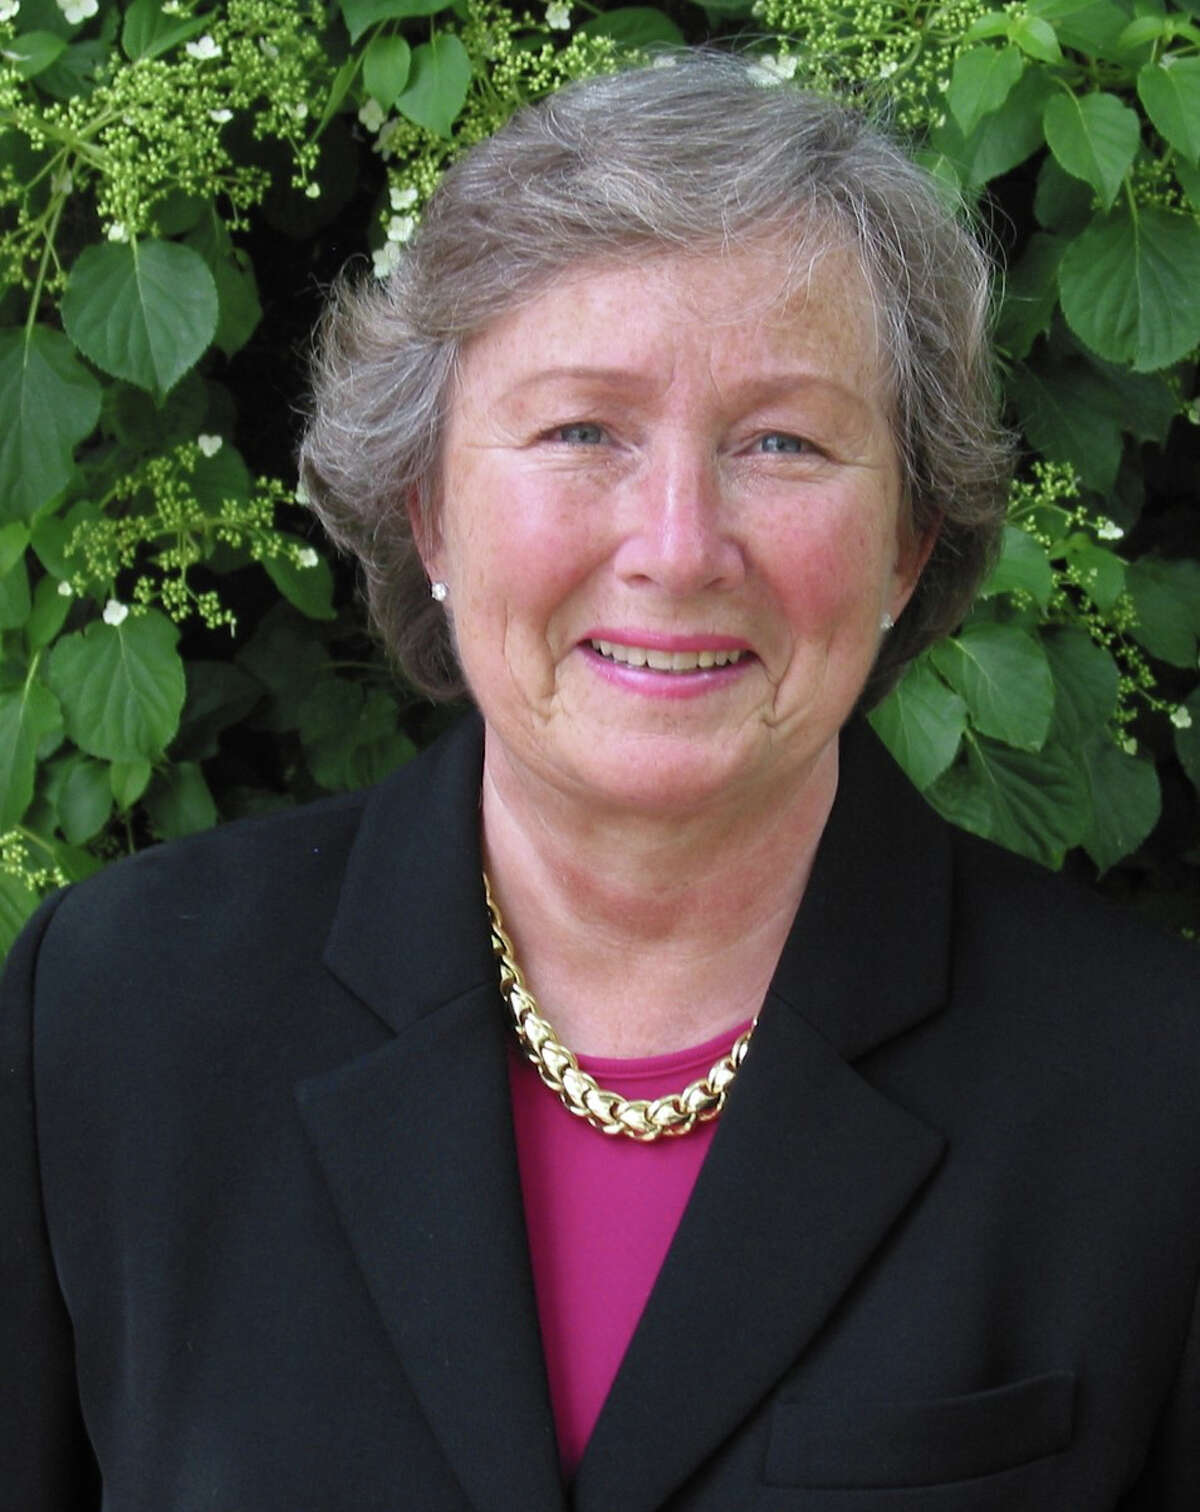 New Canaan resident and Town Council Member Penelope L. Young has been reappointed to serve on the 21-volunteer member board of Connecticut's Legislative Commission on Aging.